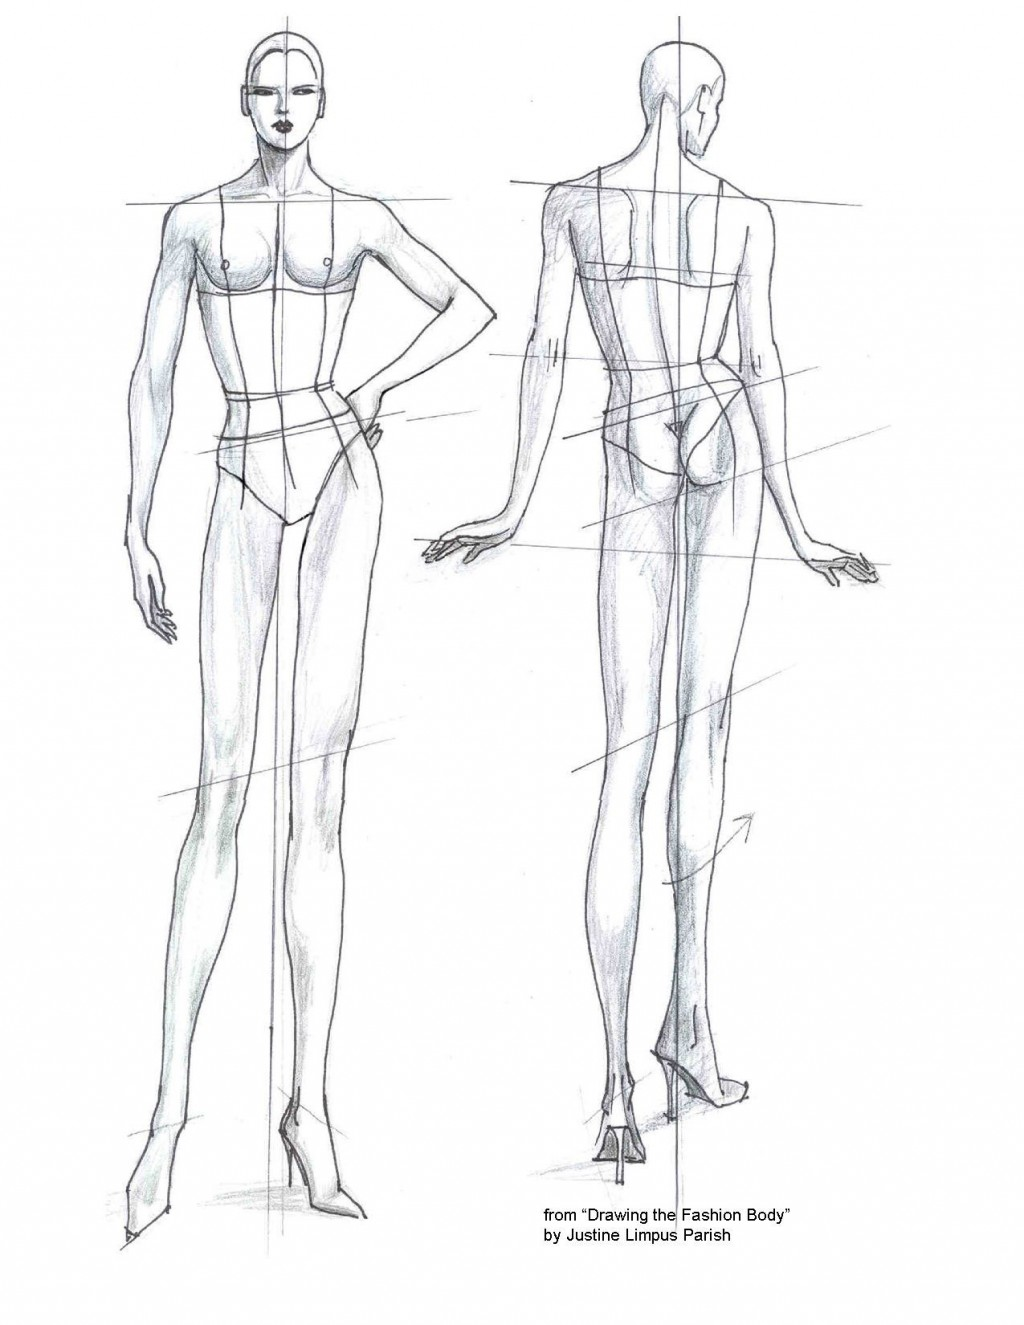 007 Unbelievable Body Template For Fashion Design Photo  Female Male HumanLarge